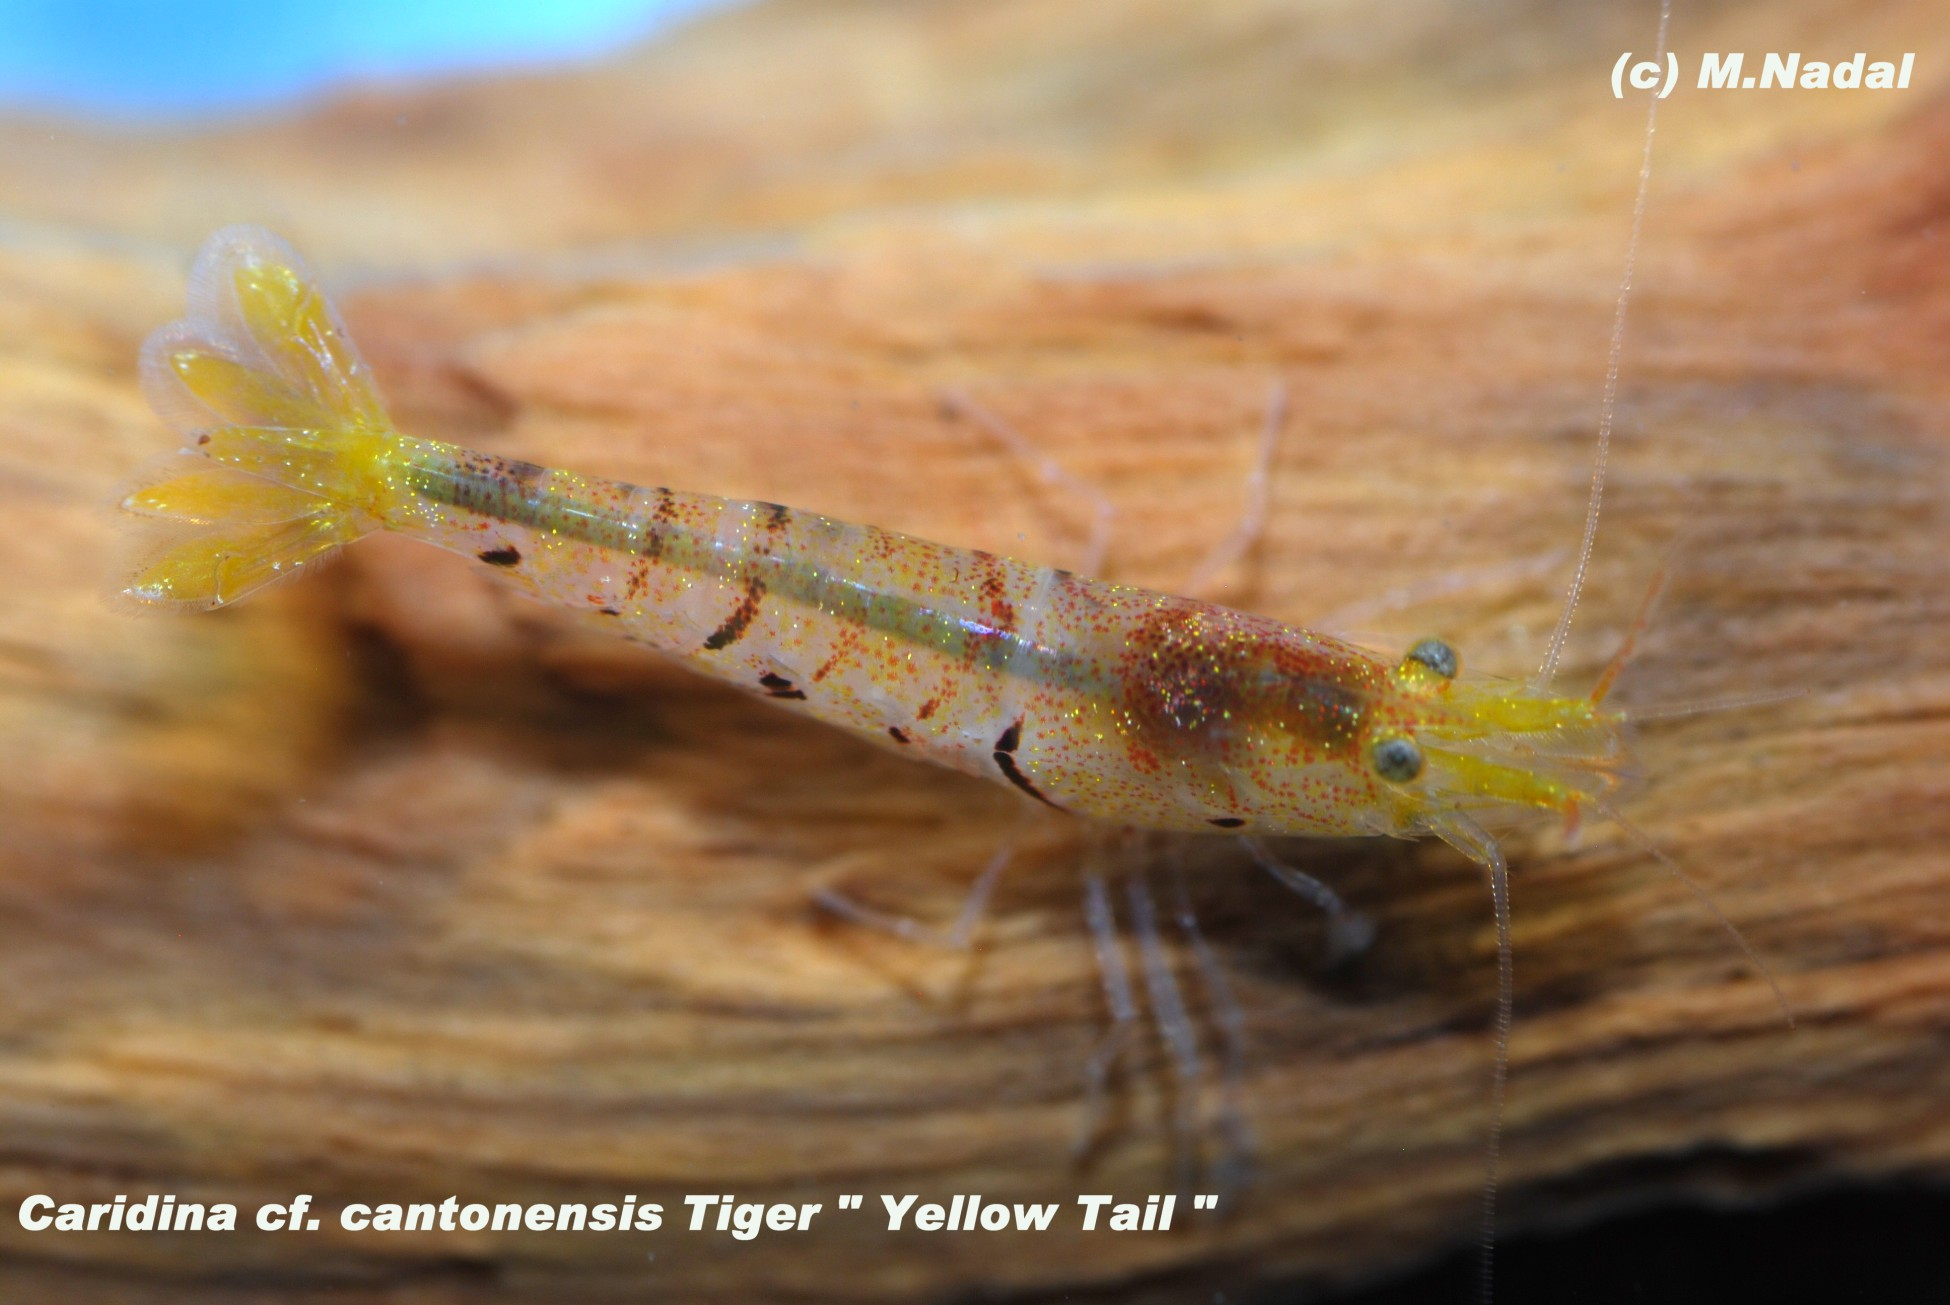 Caridina sp. cantonensis Tiger Yellow Tail (Желтый хвост)